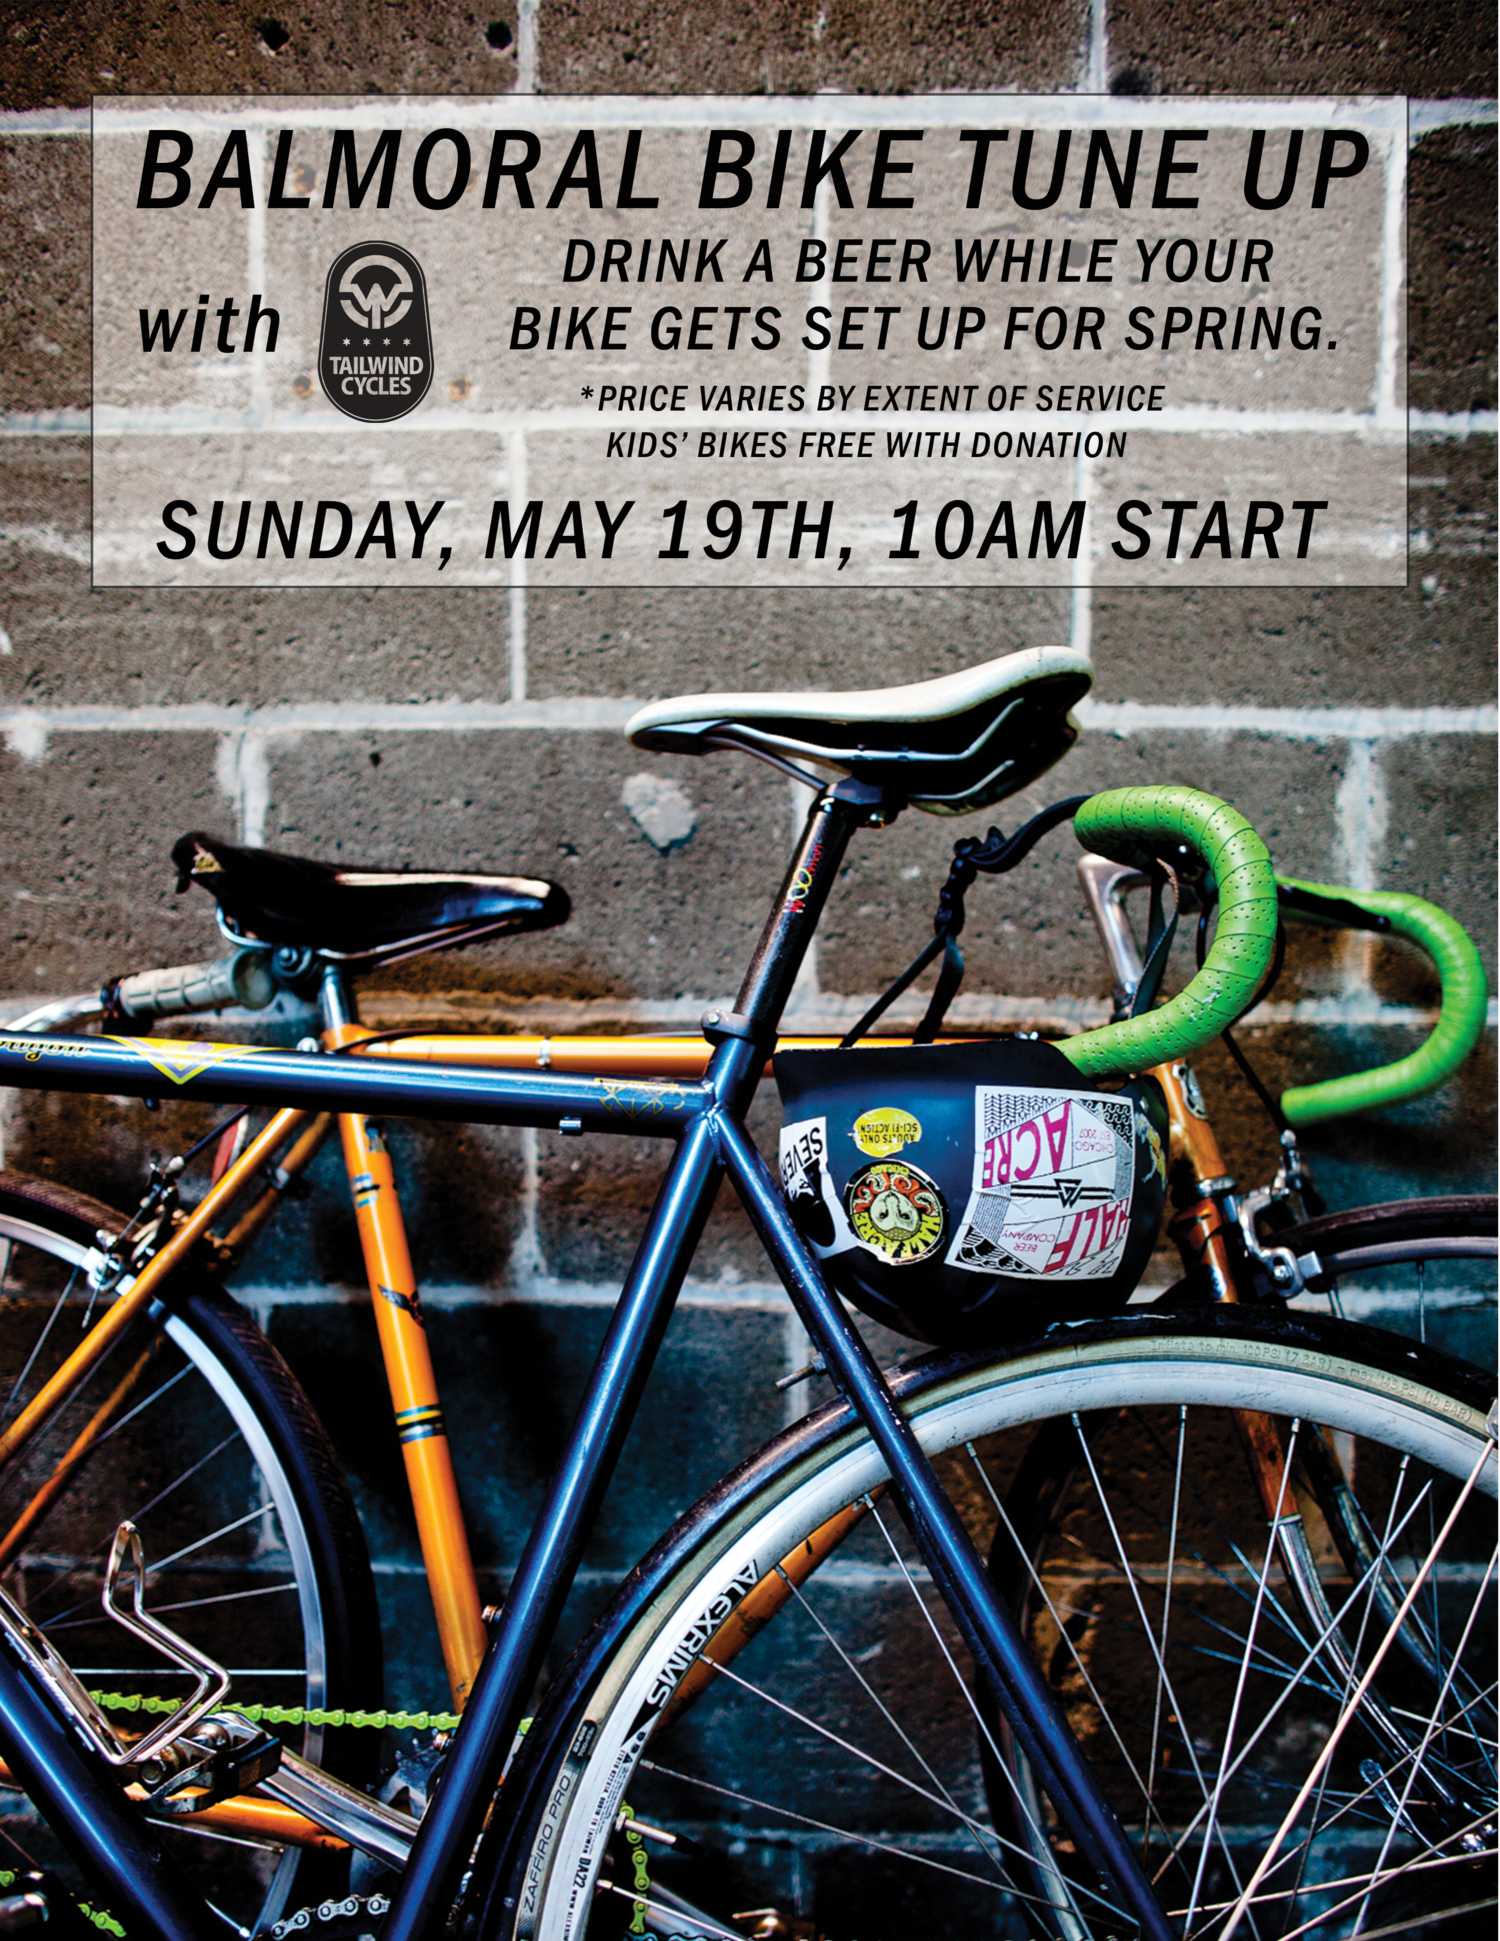 Bike Tune Up >> Balmoral Bike Tune Up With Tailwind Cycles Half Acre